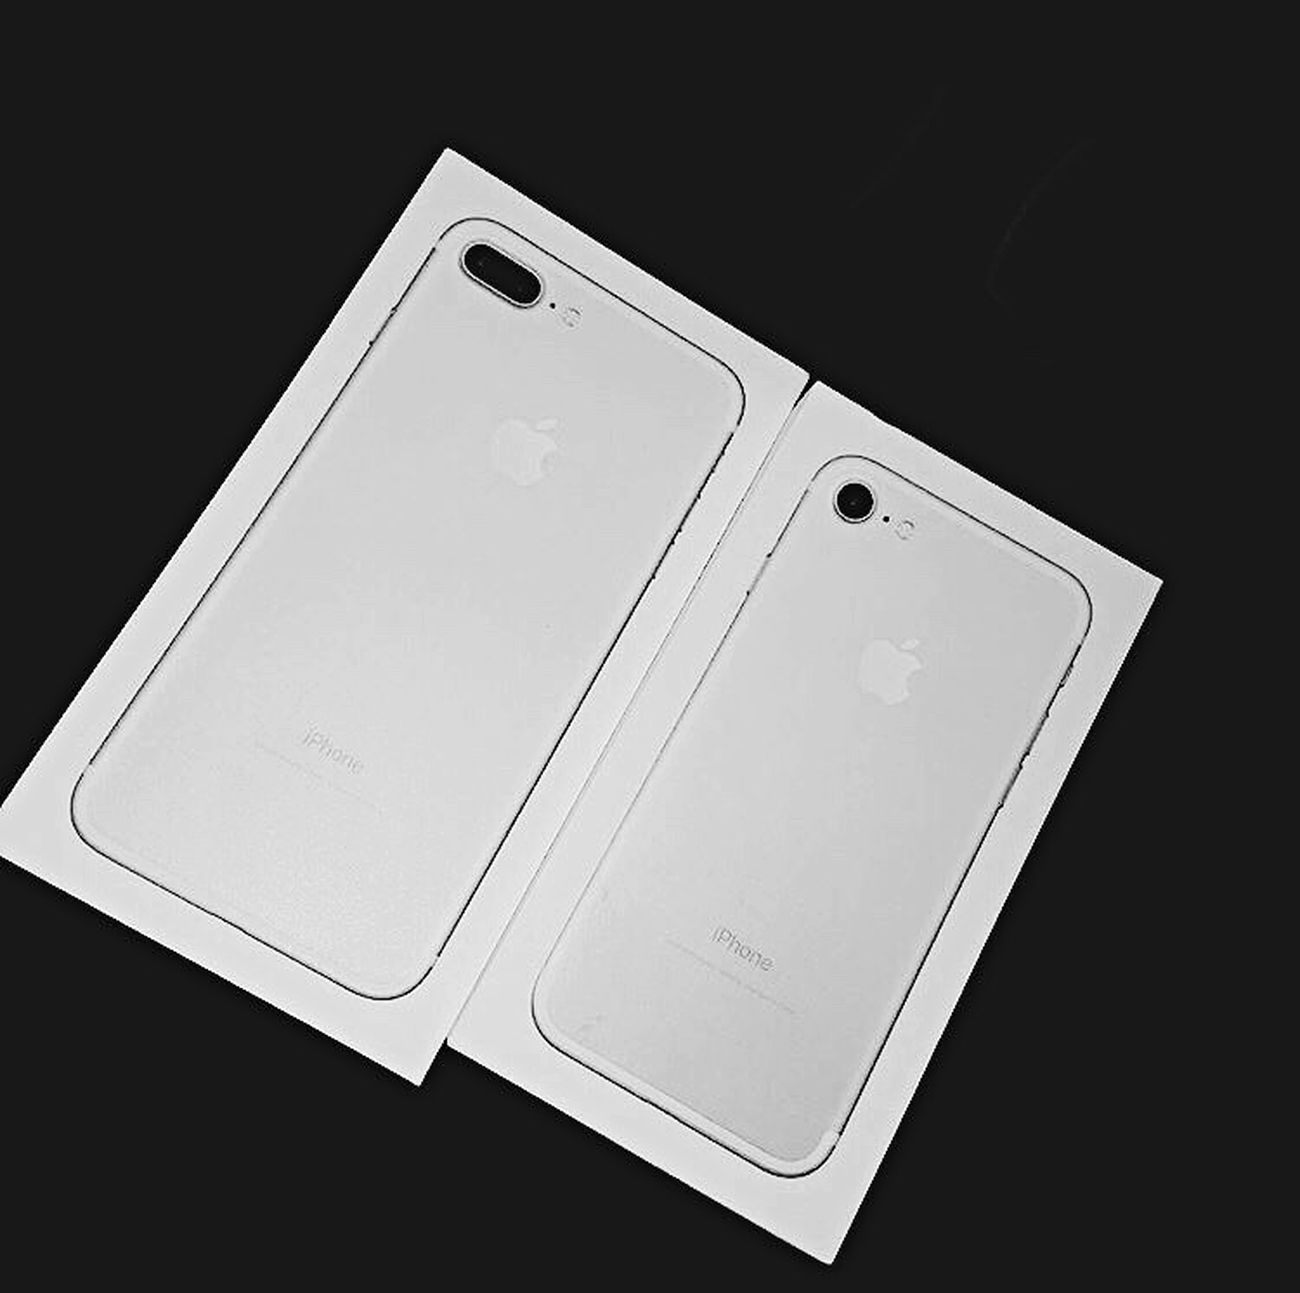 iPhones 📱 7 & 7 plus Technology Communication Wireless Technology Computer Portable Information Device Digital Tablet Studio Shot Smart Phone Connection Internet Touch Screen Portability No People Black Background Close-up Indoors  Working